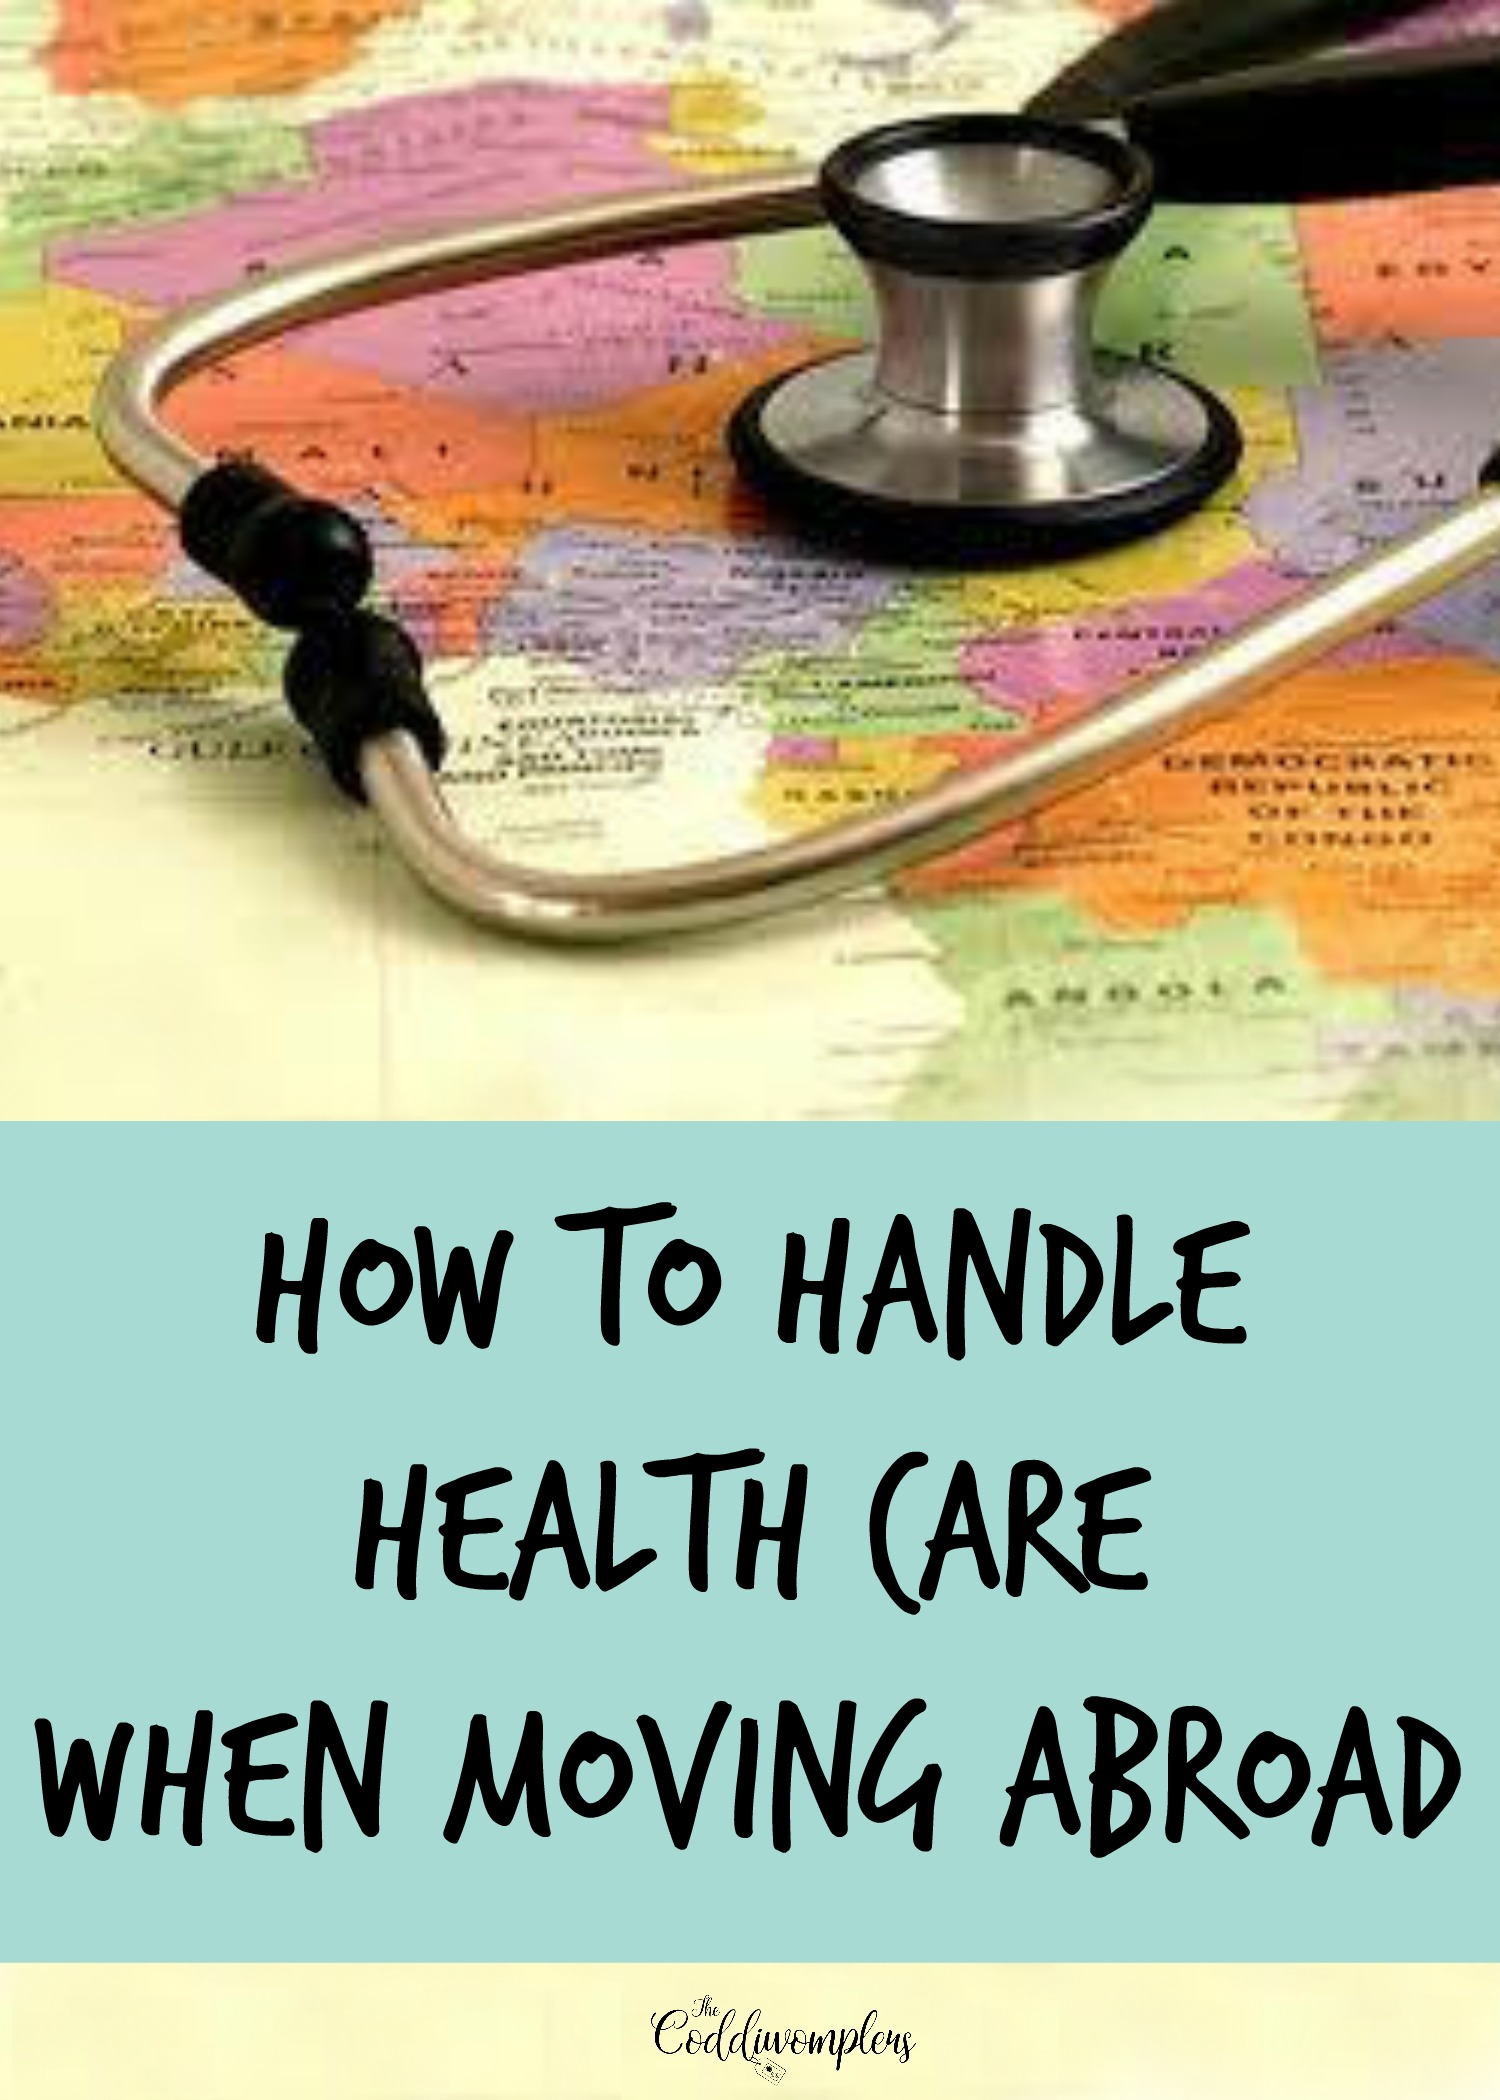 How to Handle Health Care When Moving Abroad